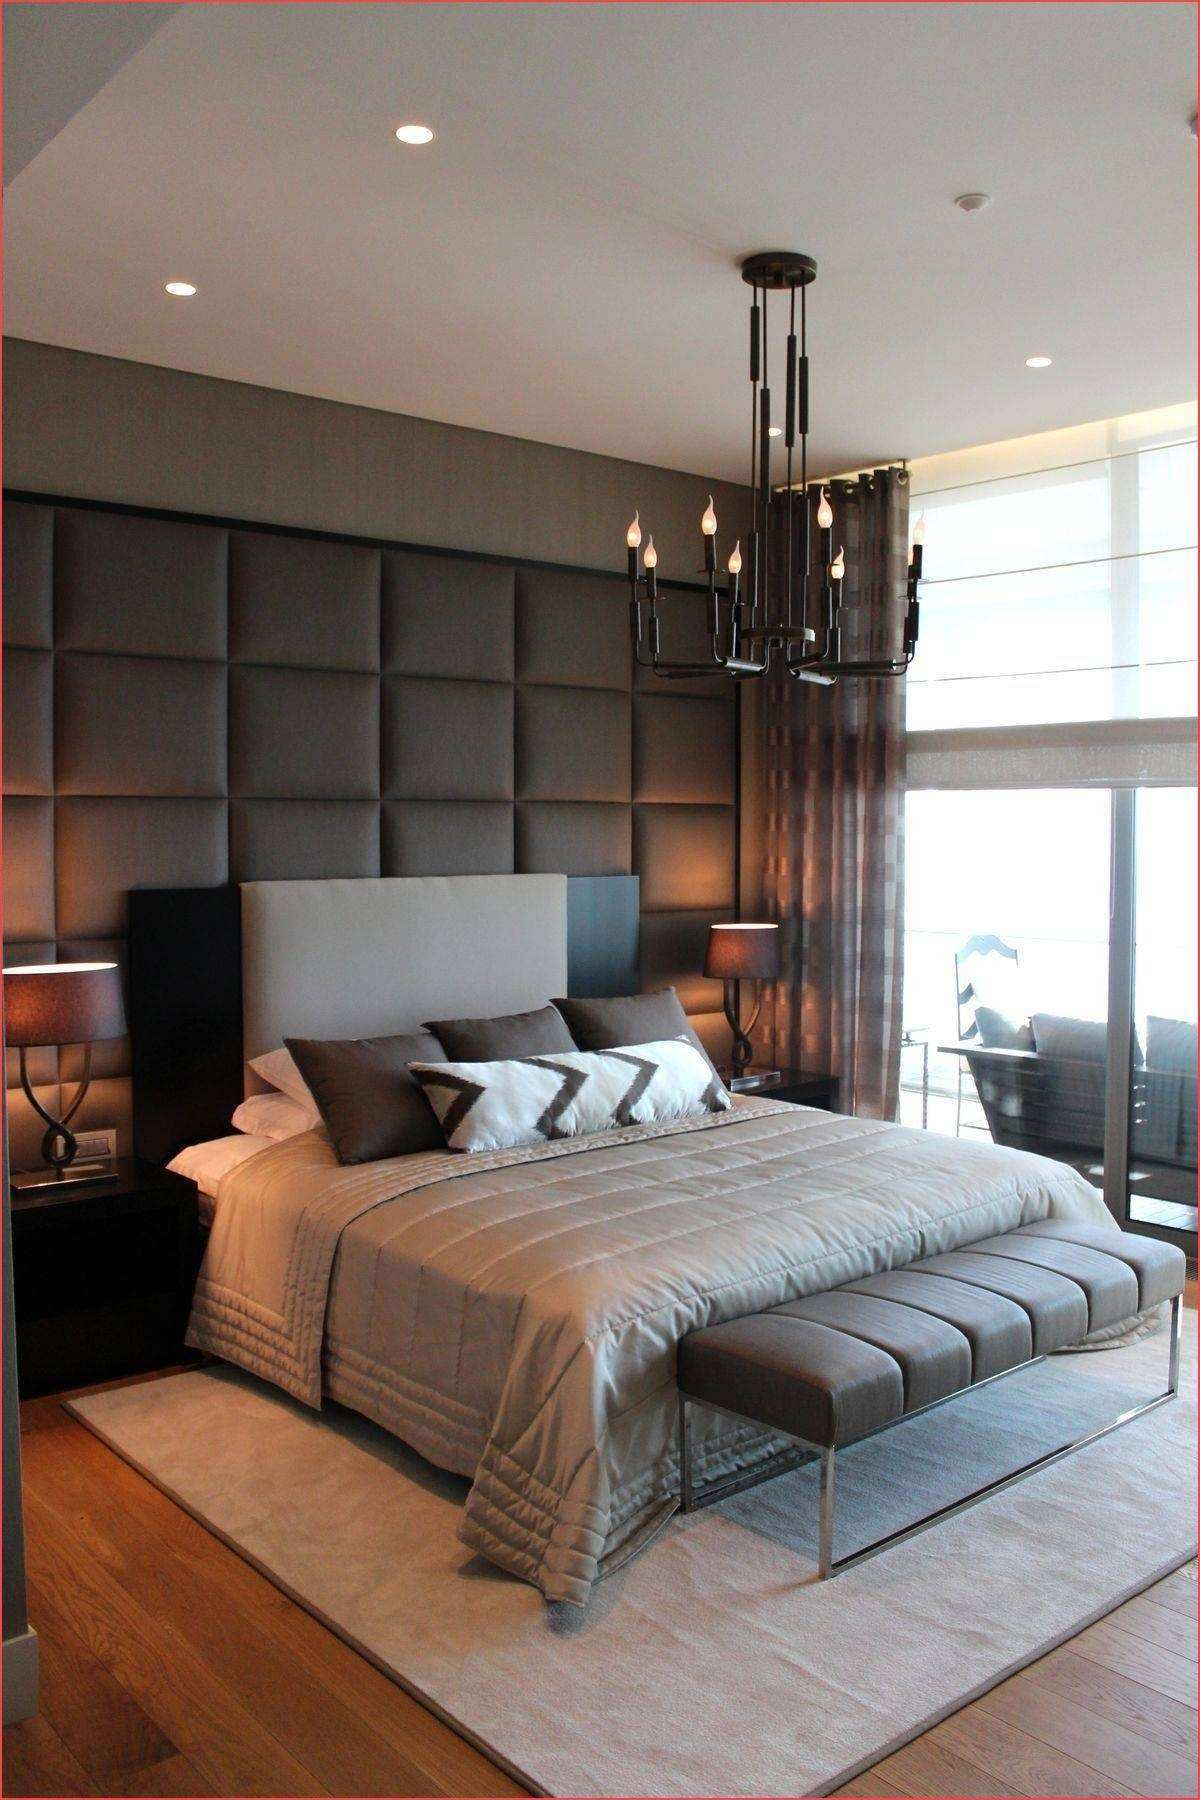 35 Luxury Small Master Bedroom Decorating Ideas